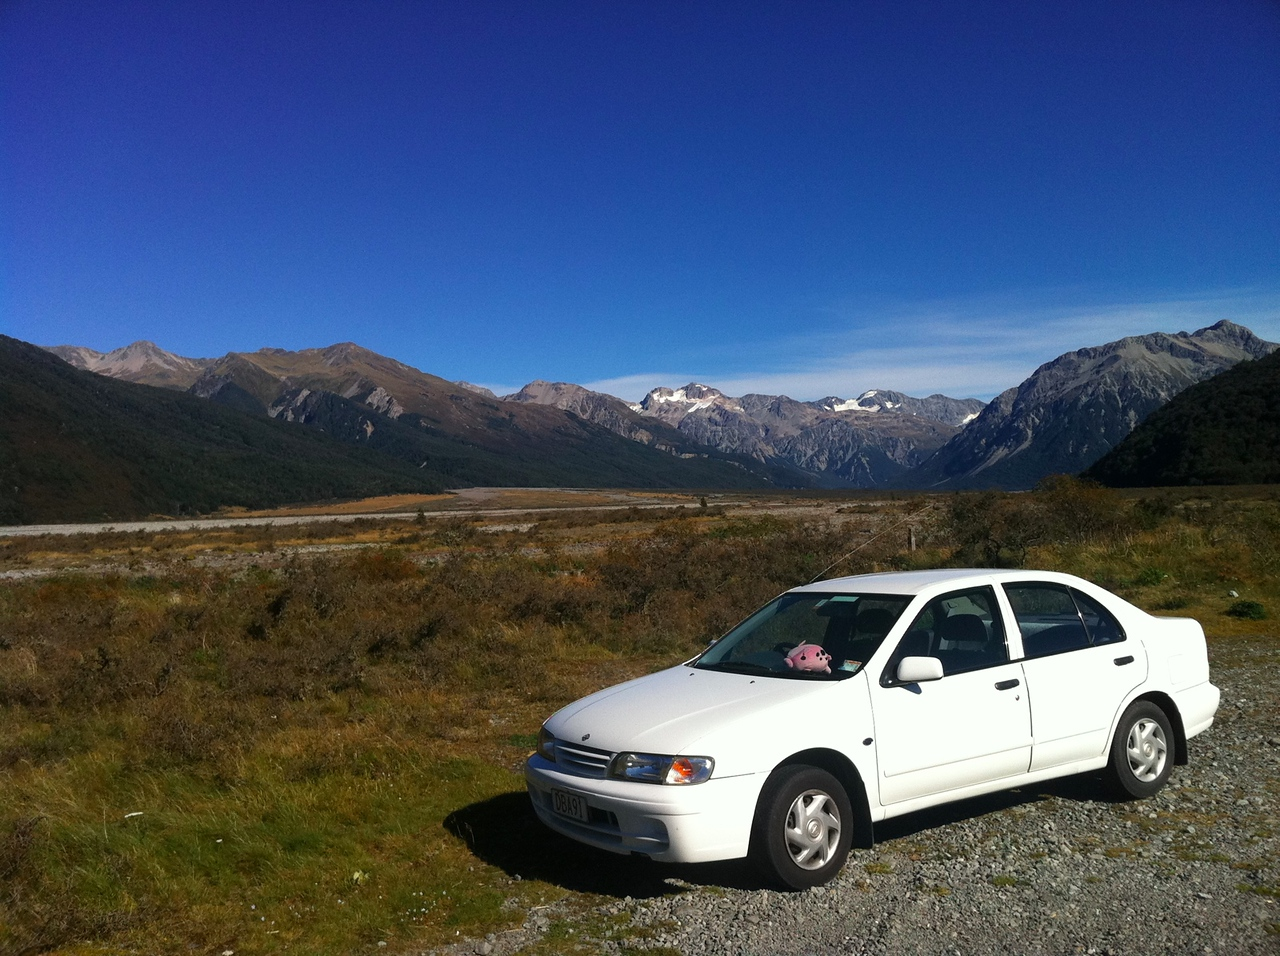 Car and Jumpy near Arthur's Pass